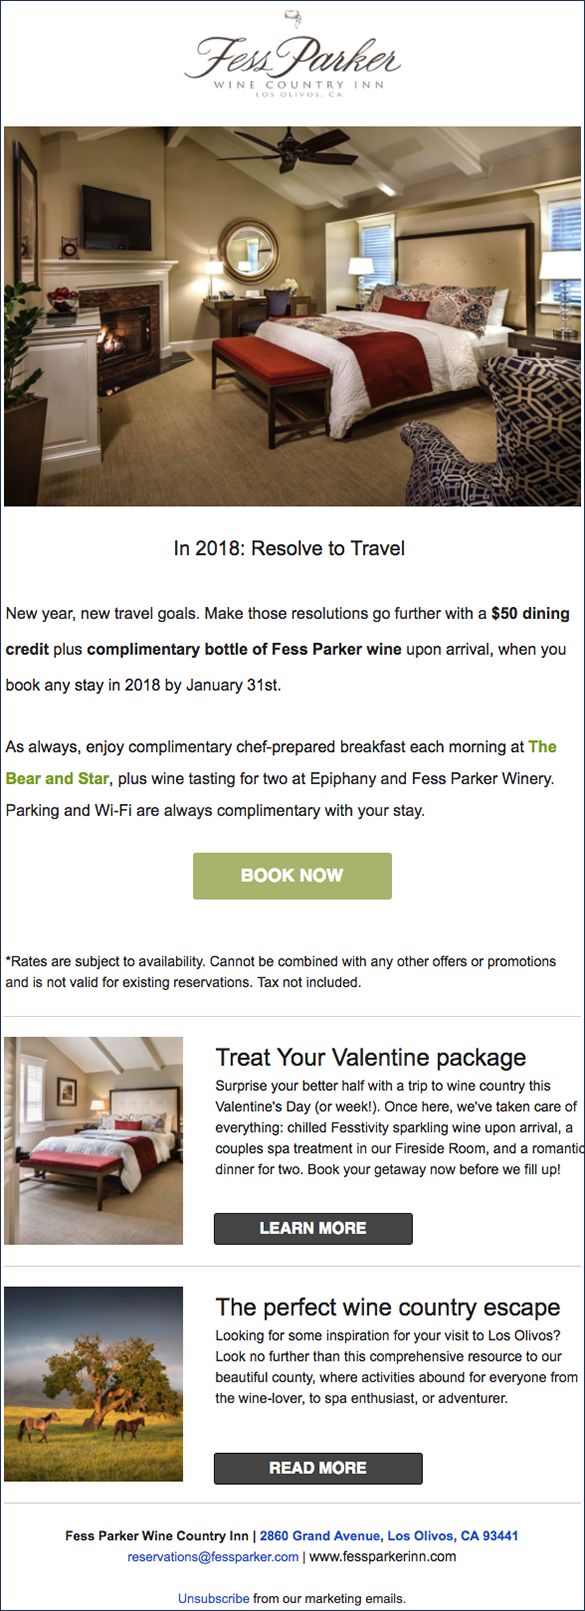 Fess Parker high-value package email marketing campaign